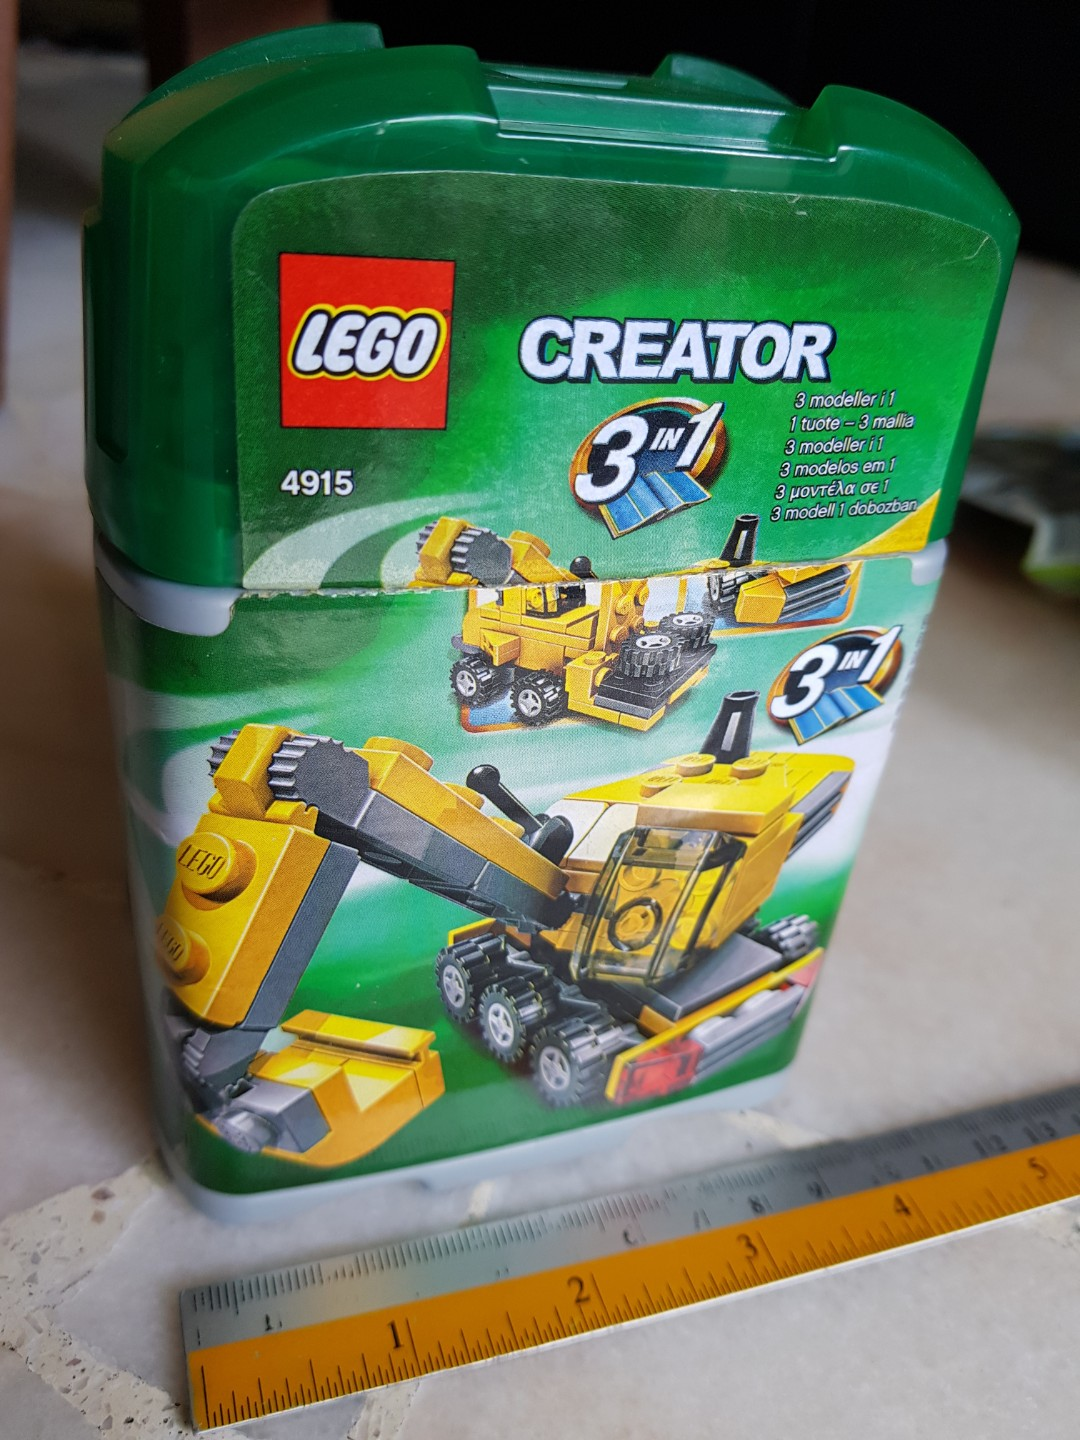 Brand New In Box Lego Creator 3 In 1 4915 Toys Games Bricks